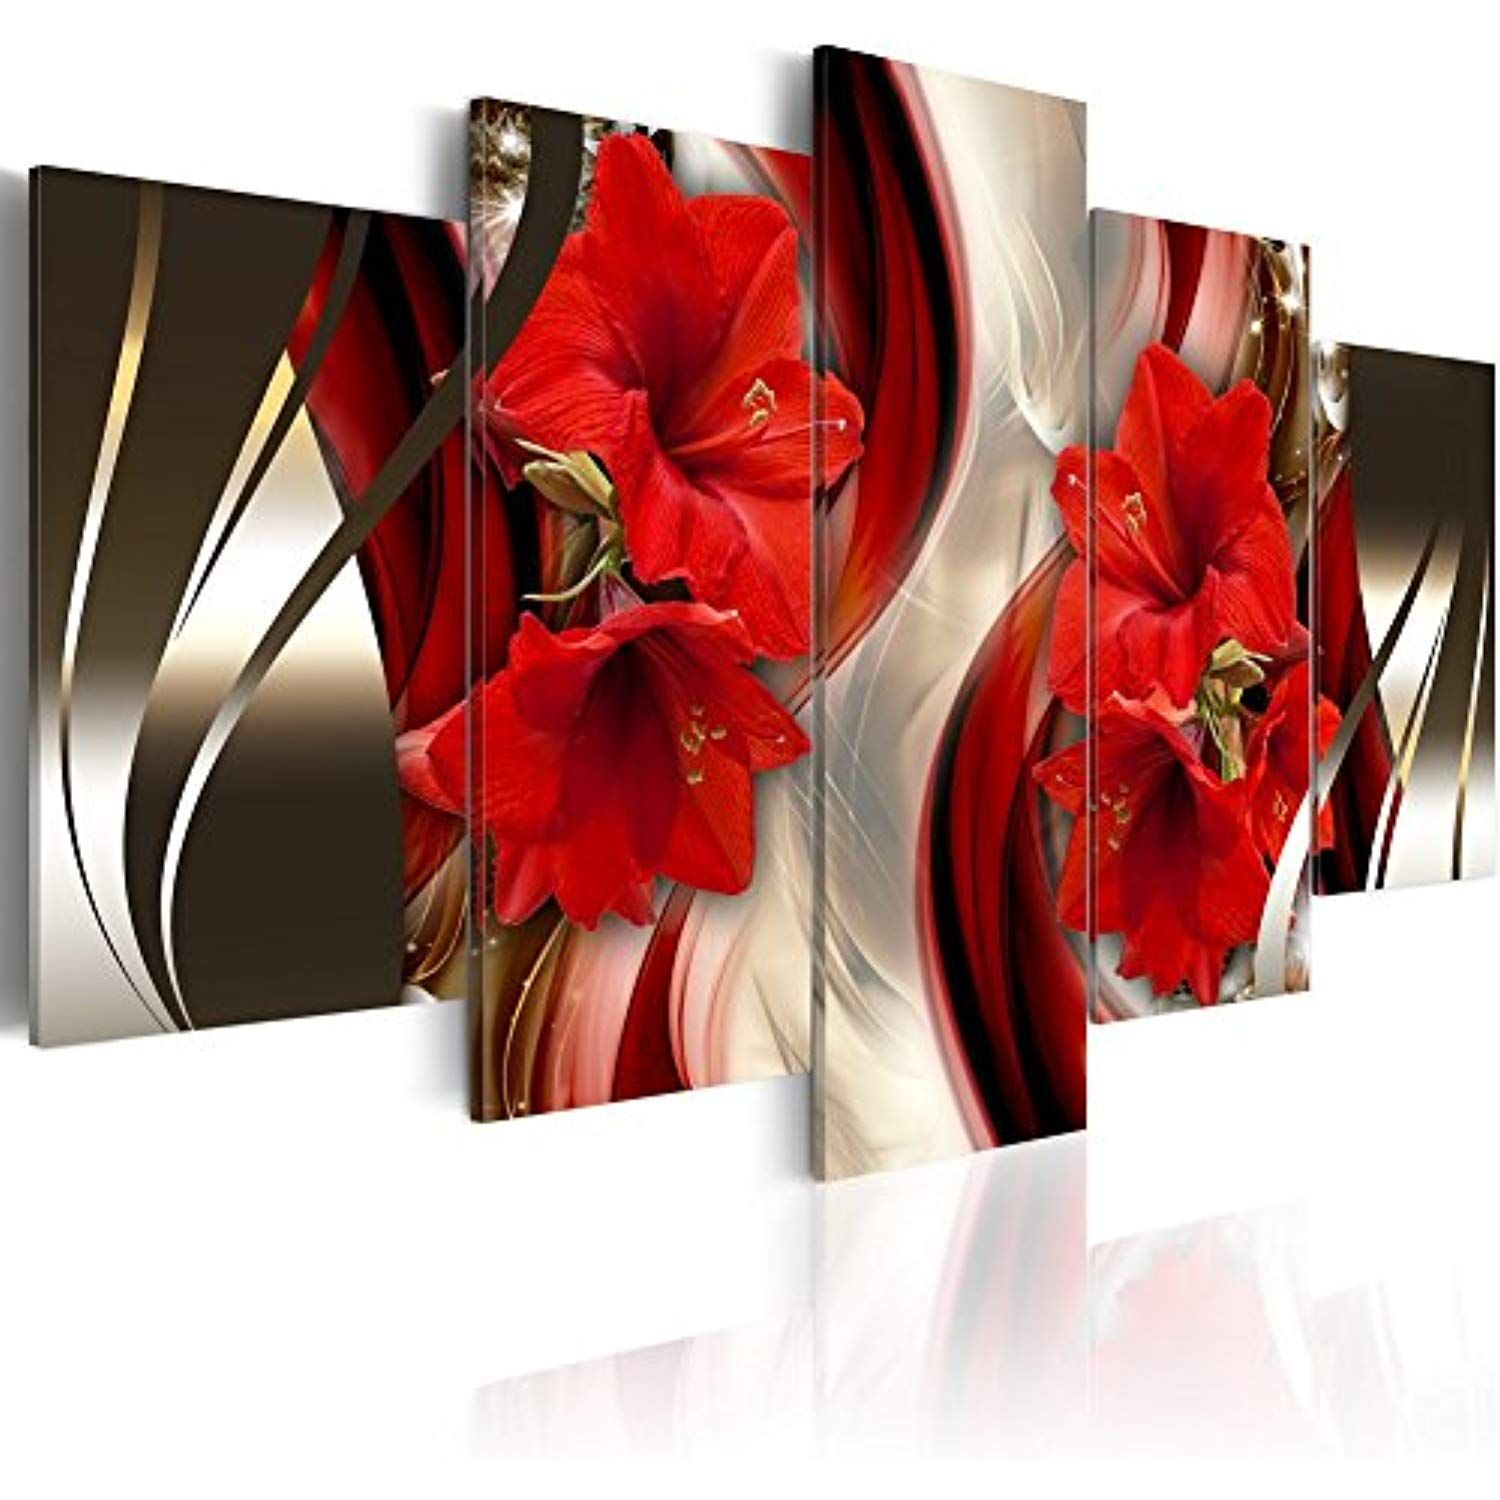 Oversized Framed Canvas Wall Art Red Flower Print Painting